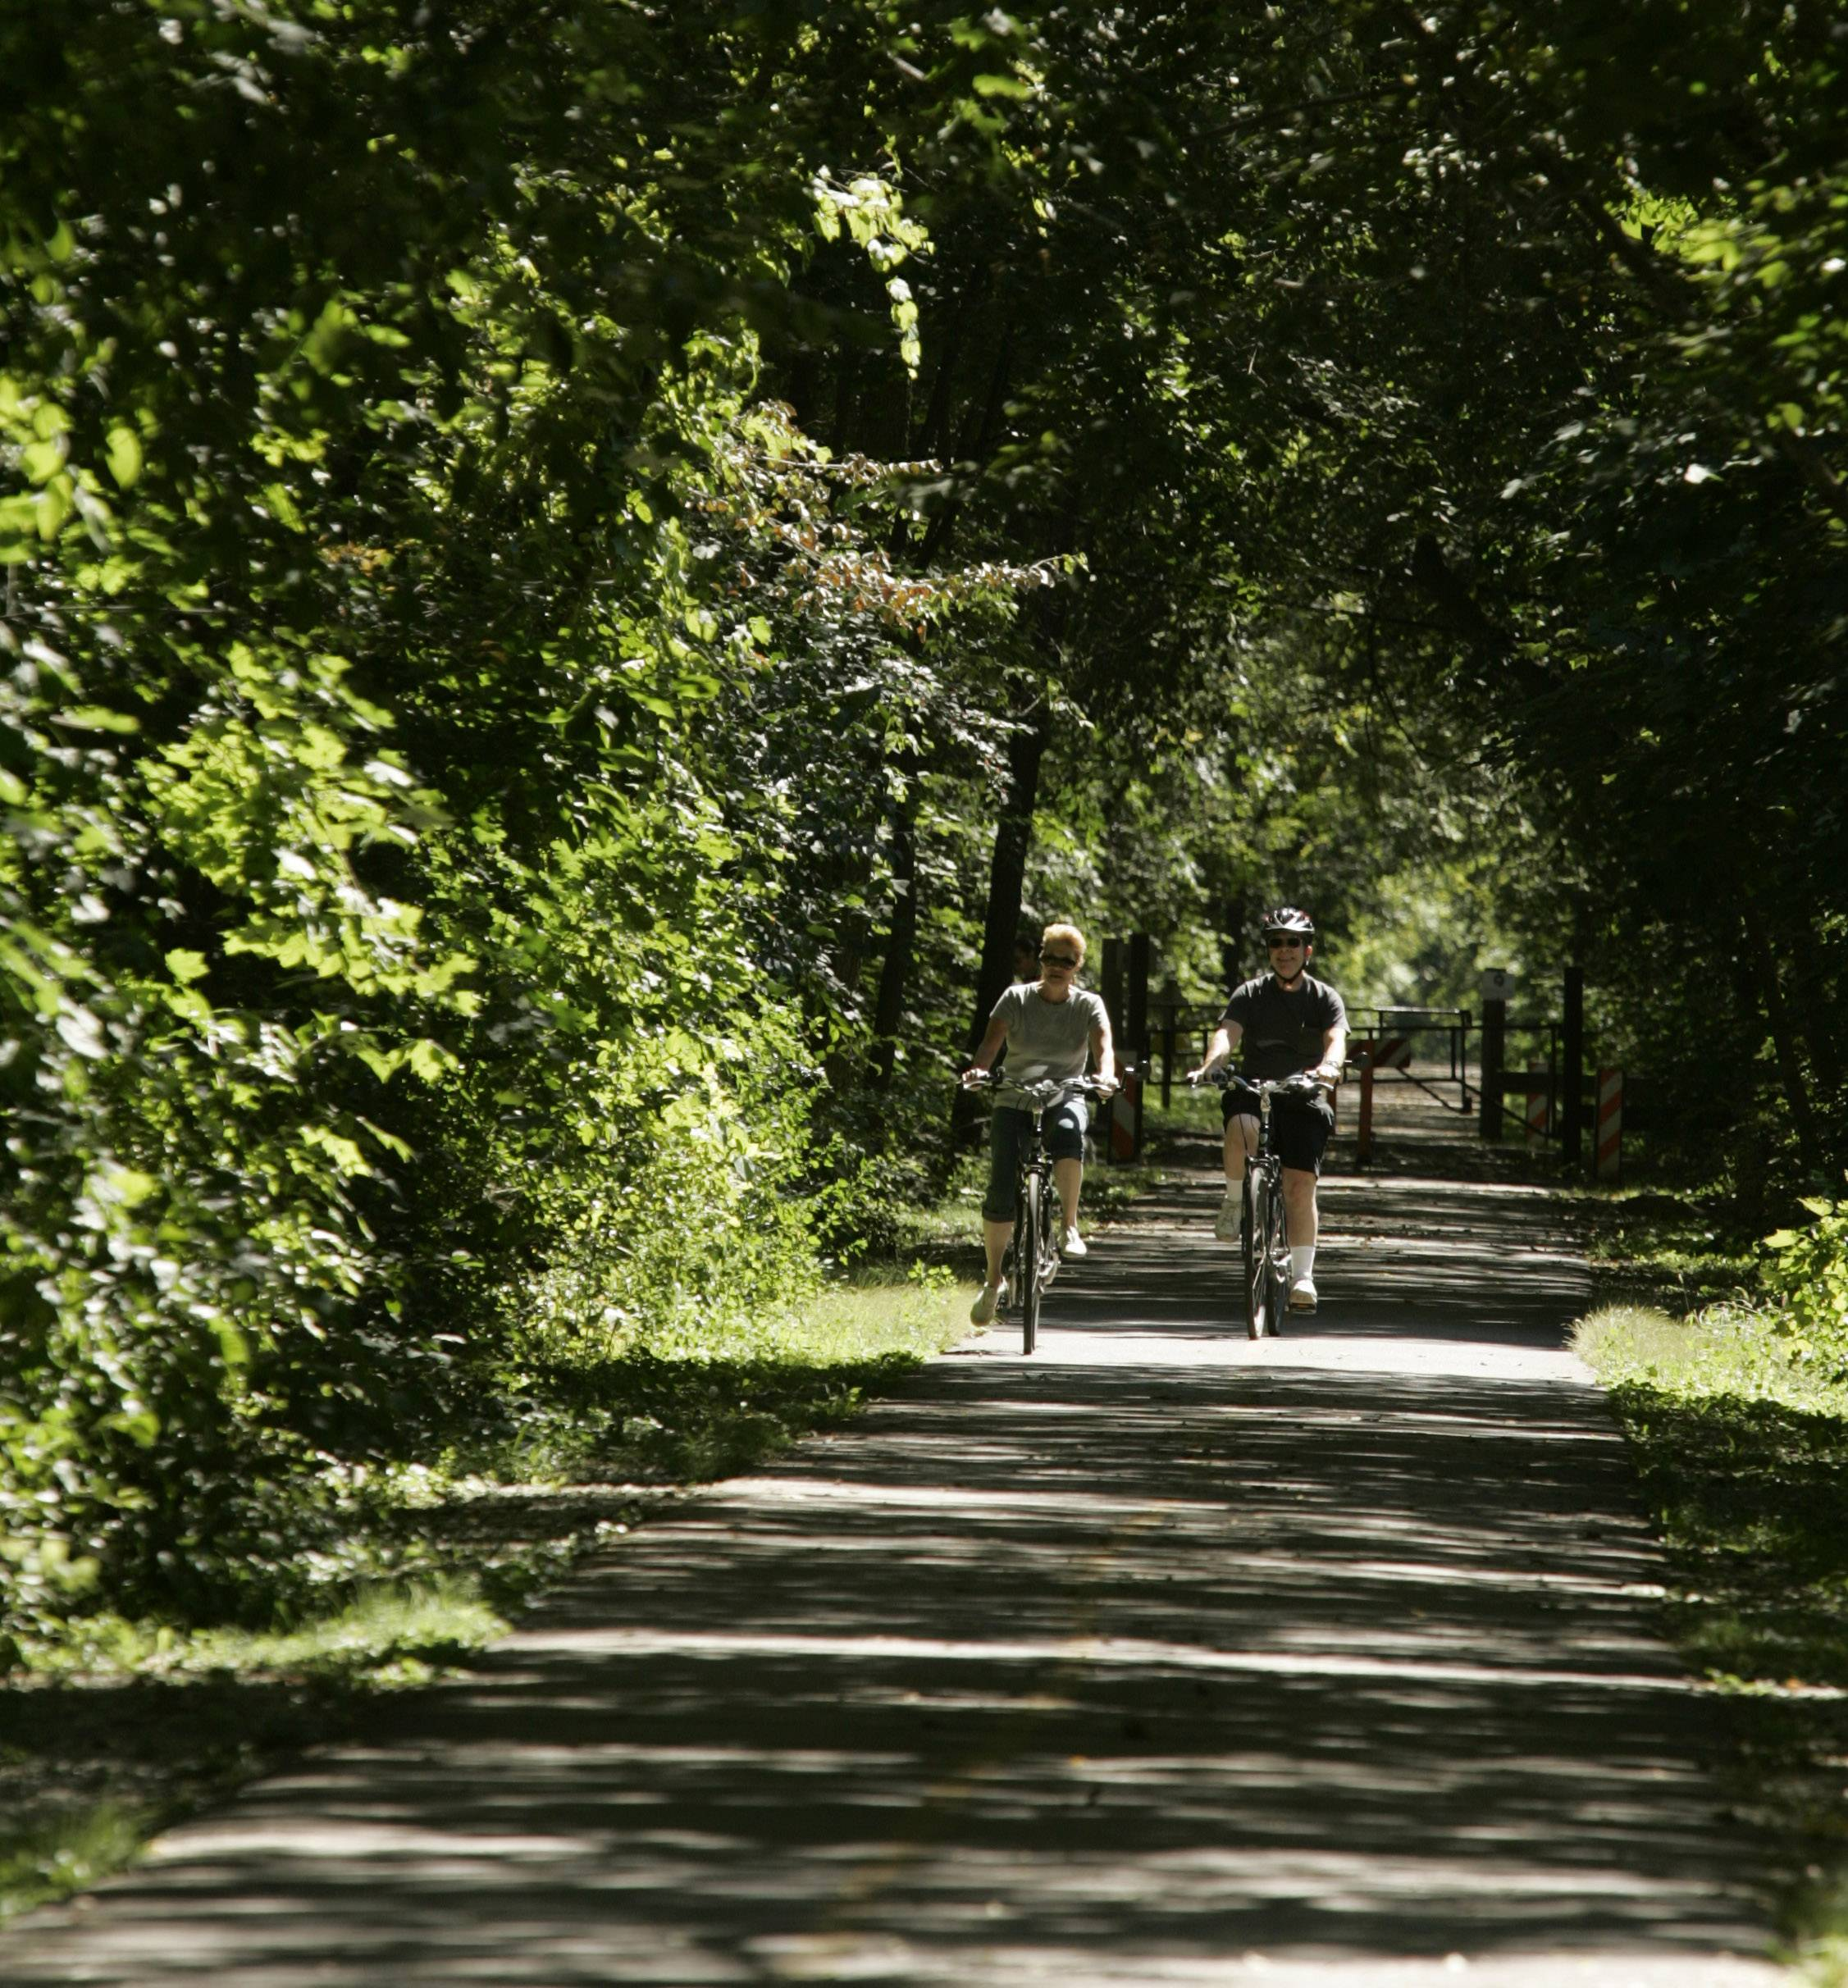 The McHenry County Conservation District's Prairie Trail will connect to a path along Route 31 if Algonquin secures funding for a new $1.8 million bikeway through its downtown.